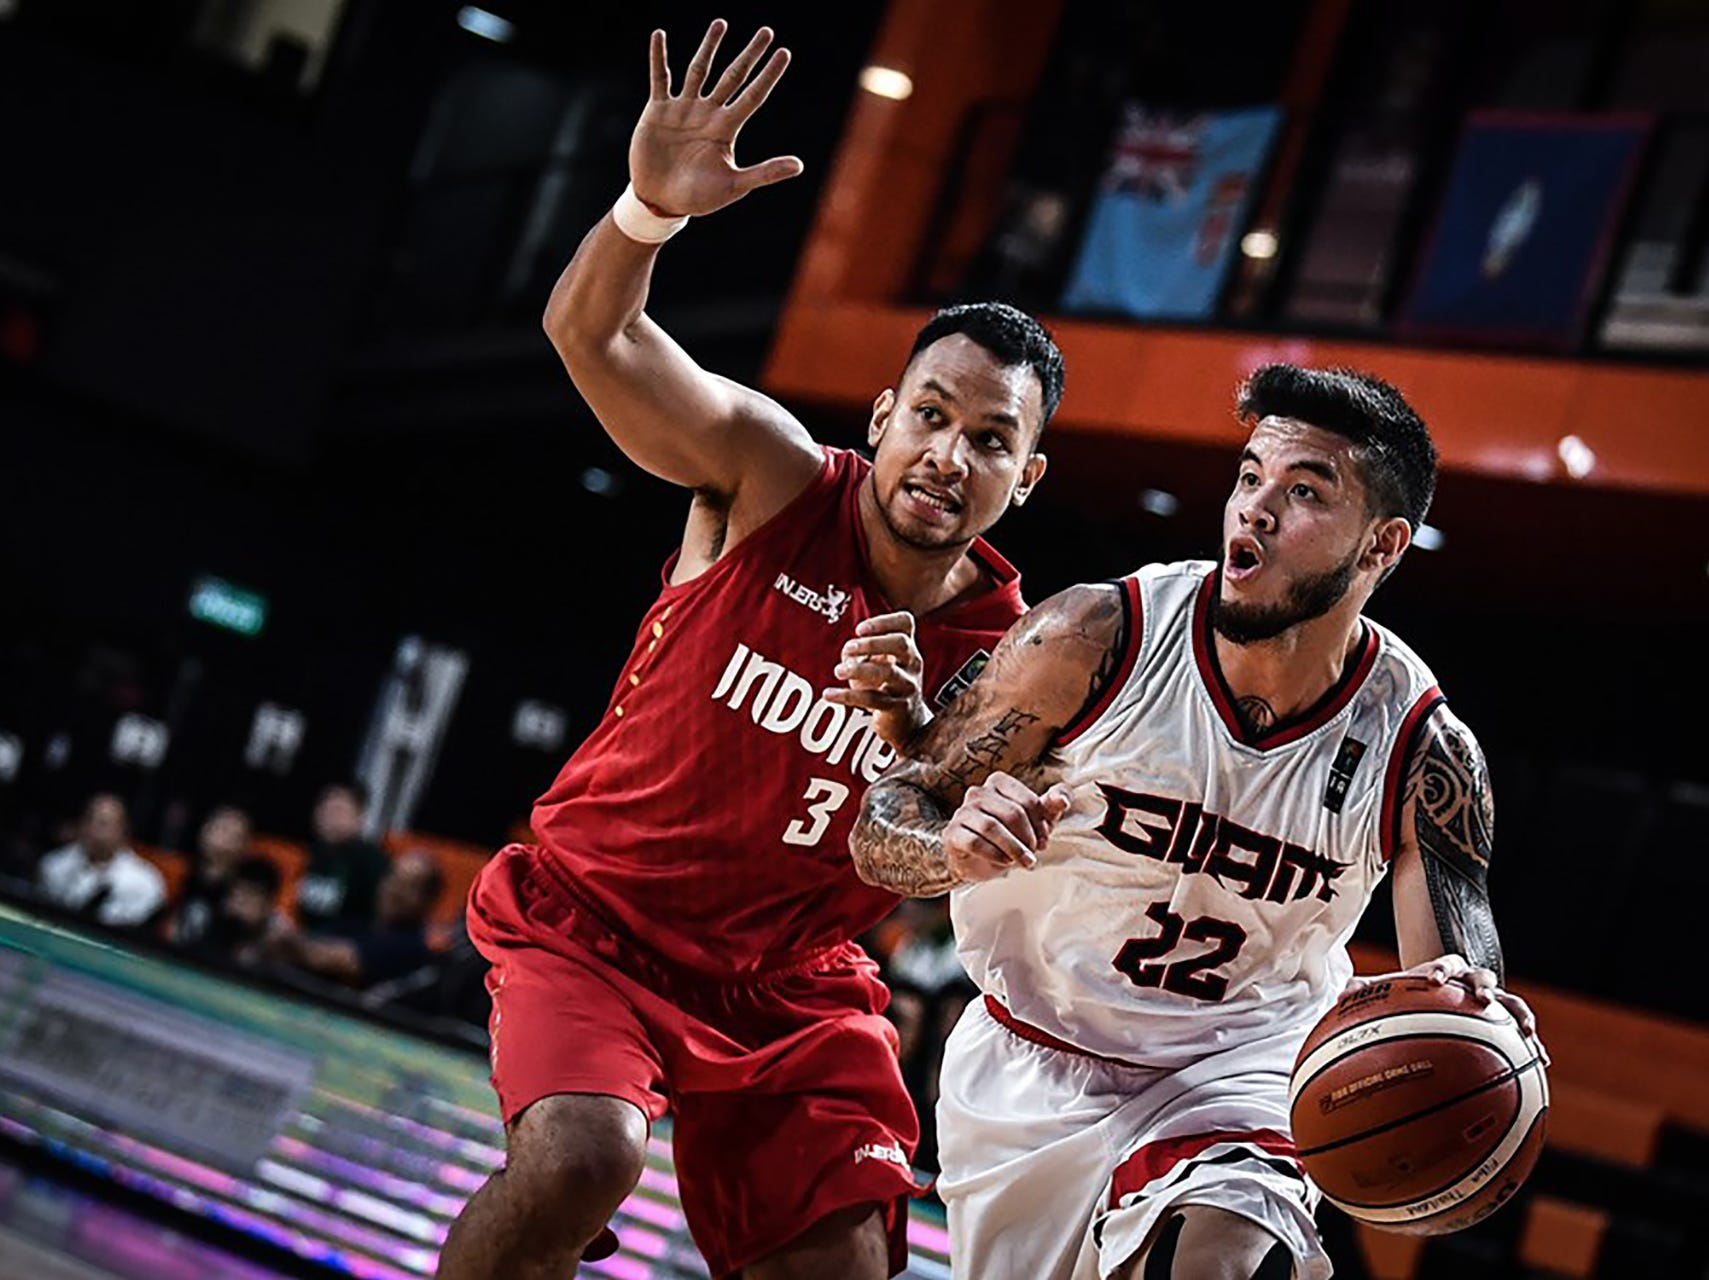 Daren Hechanova looks for an opening against Indonesia Thursday night in the FIBA Asia Cup 2021 Pre-Qualifiers.